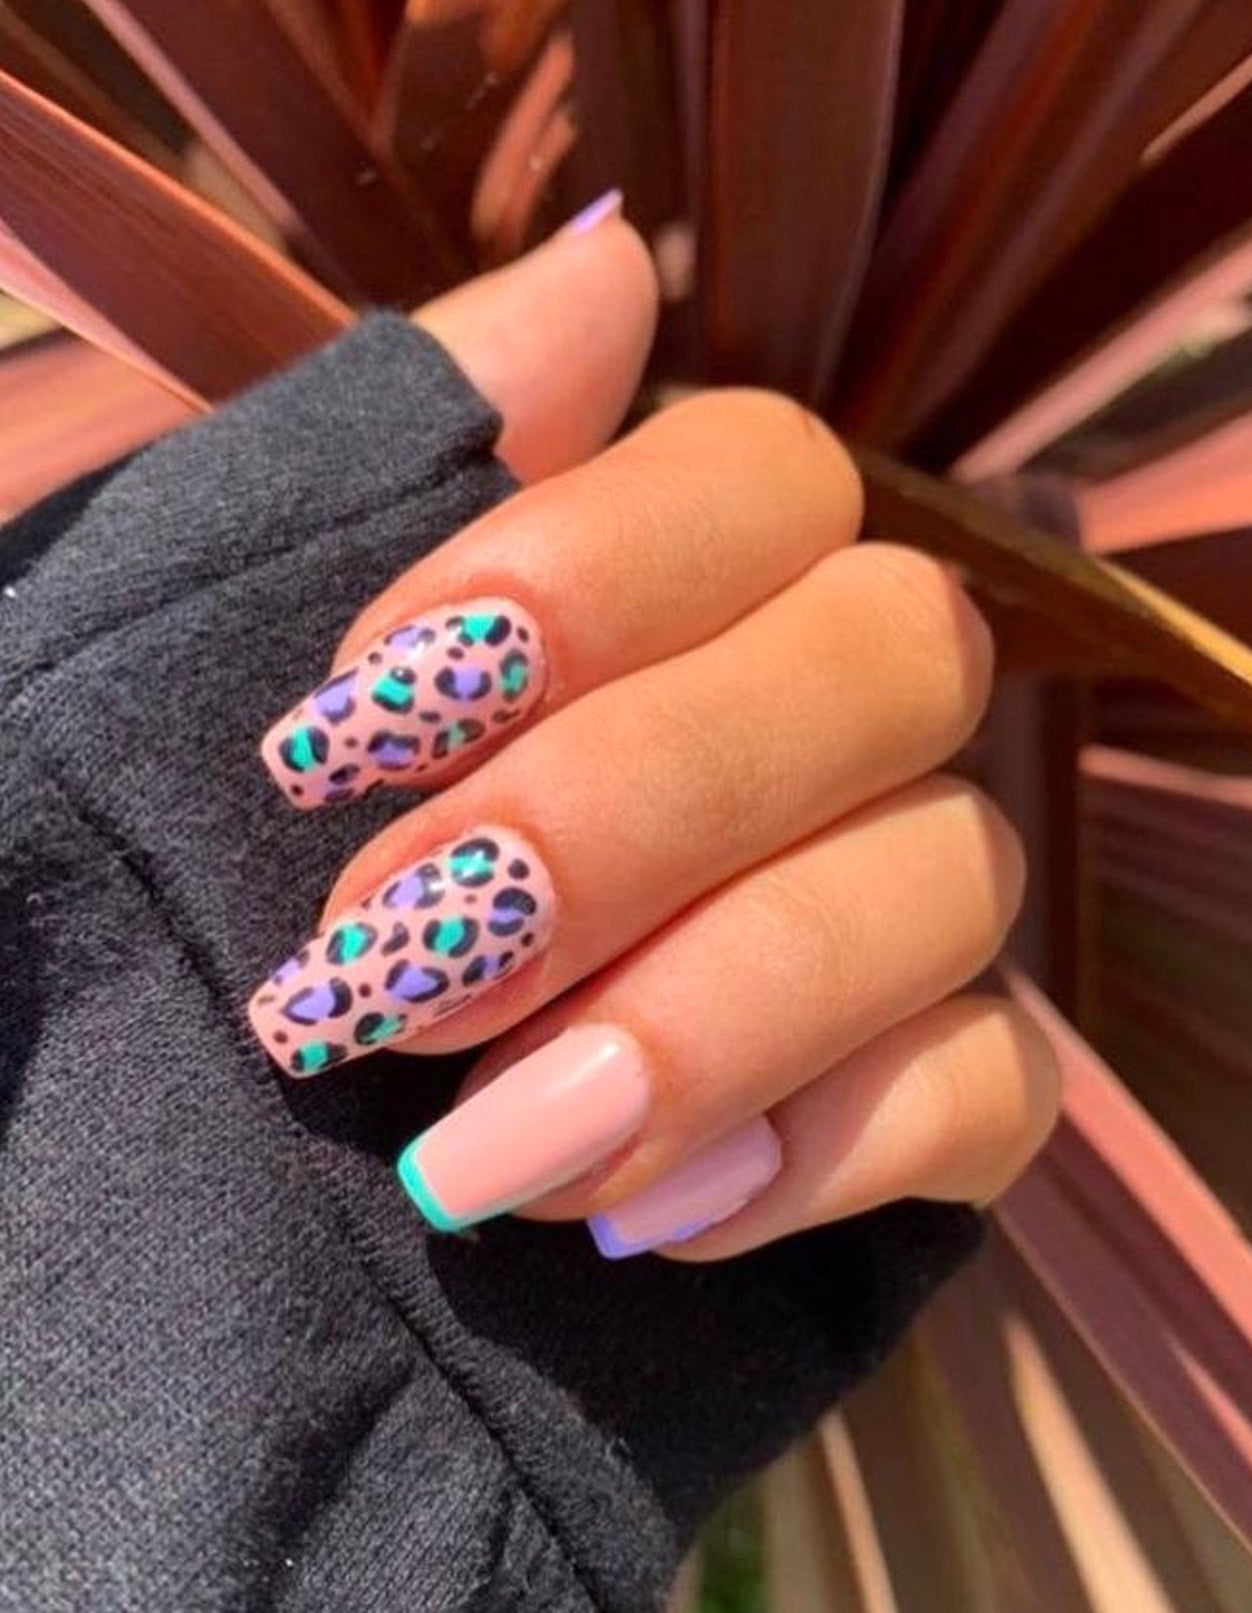 Pink, lavender, and teal leopard nails